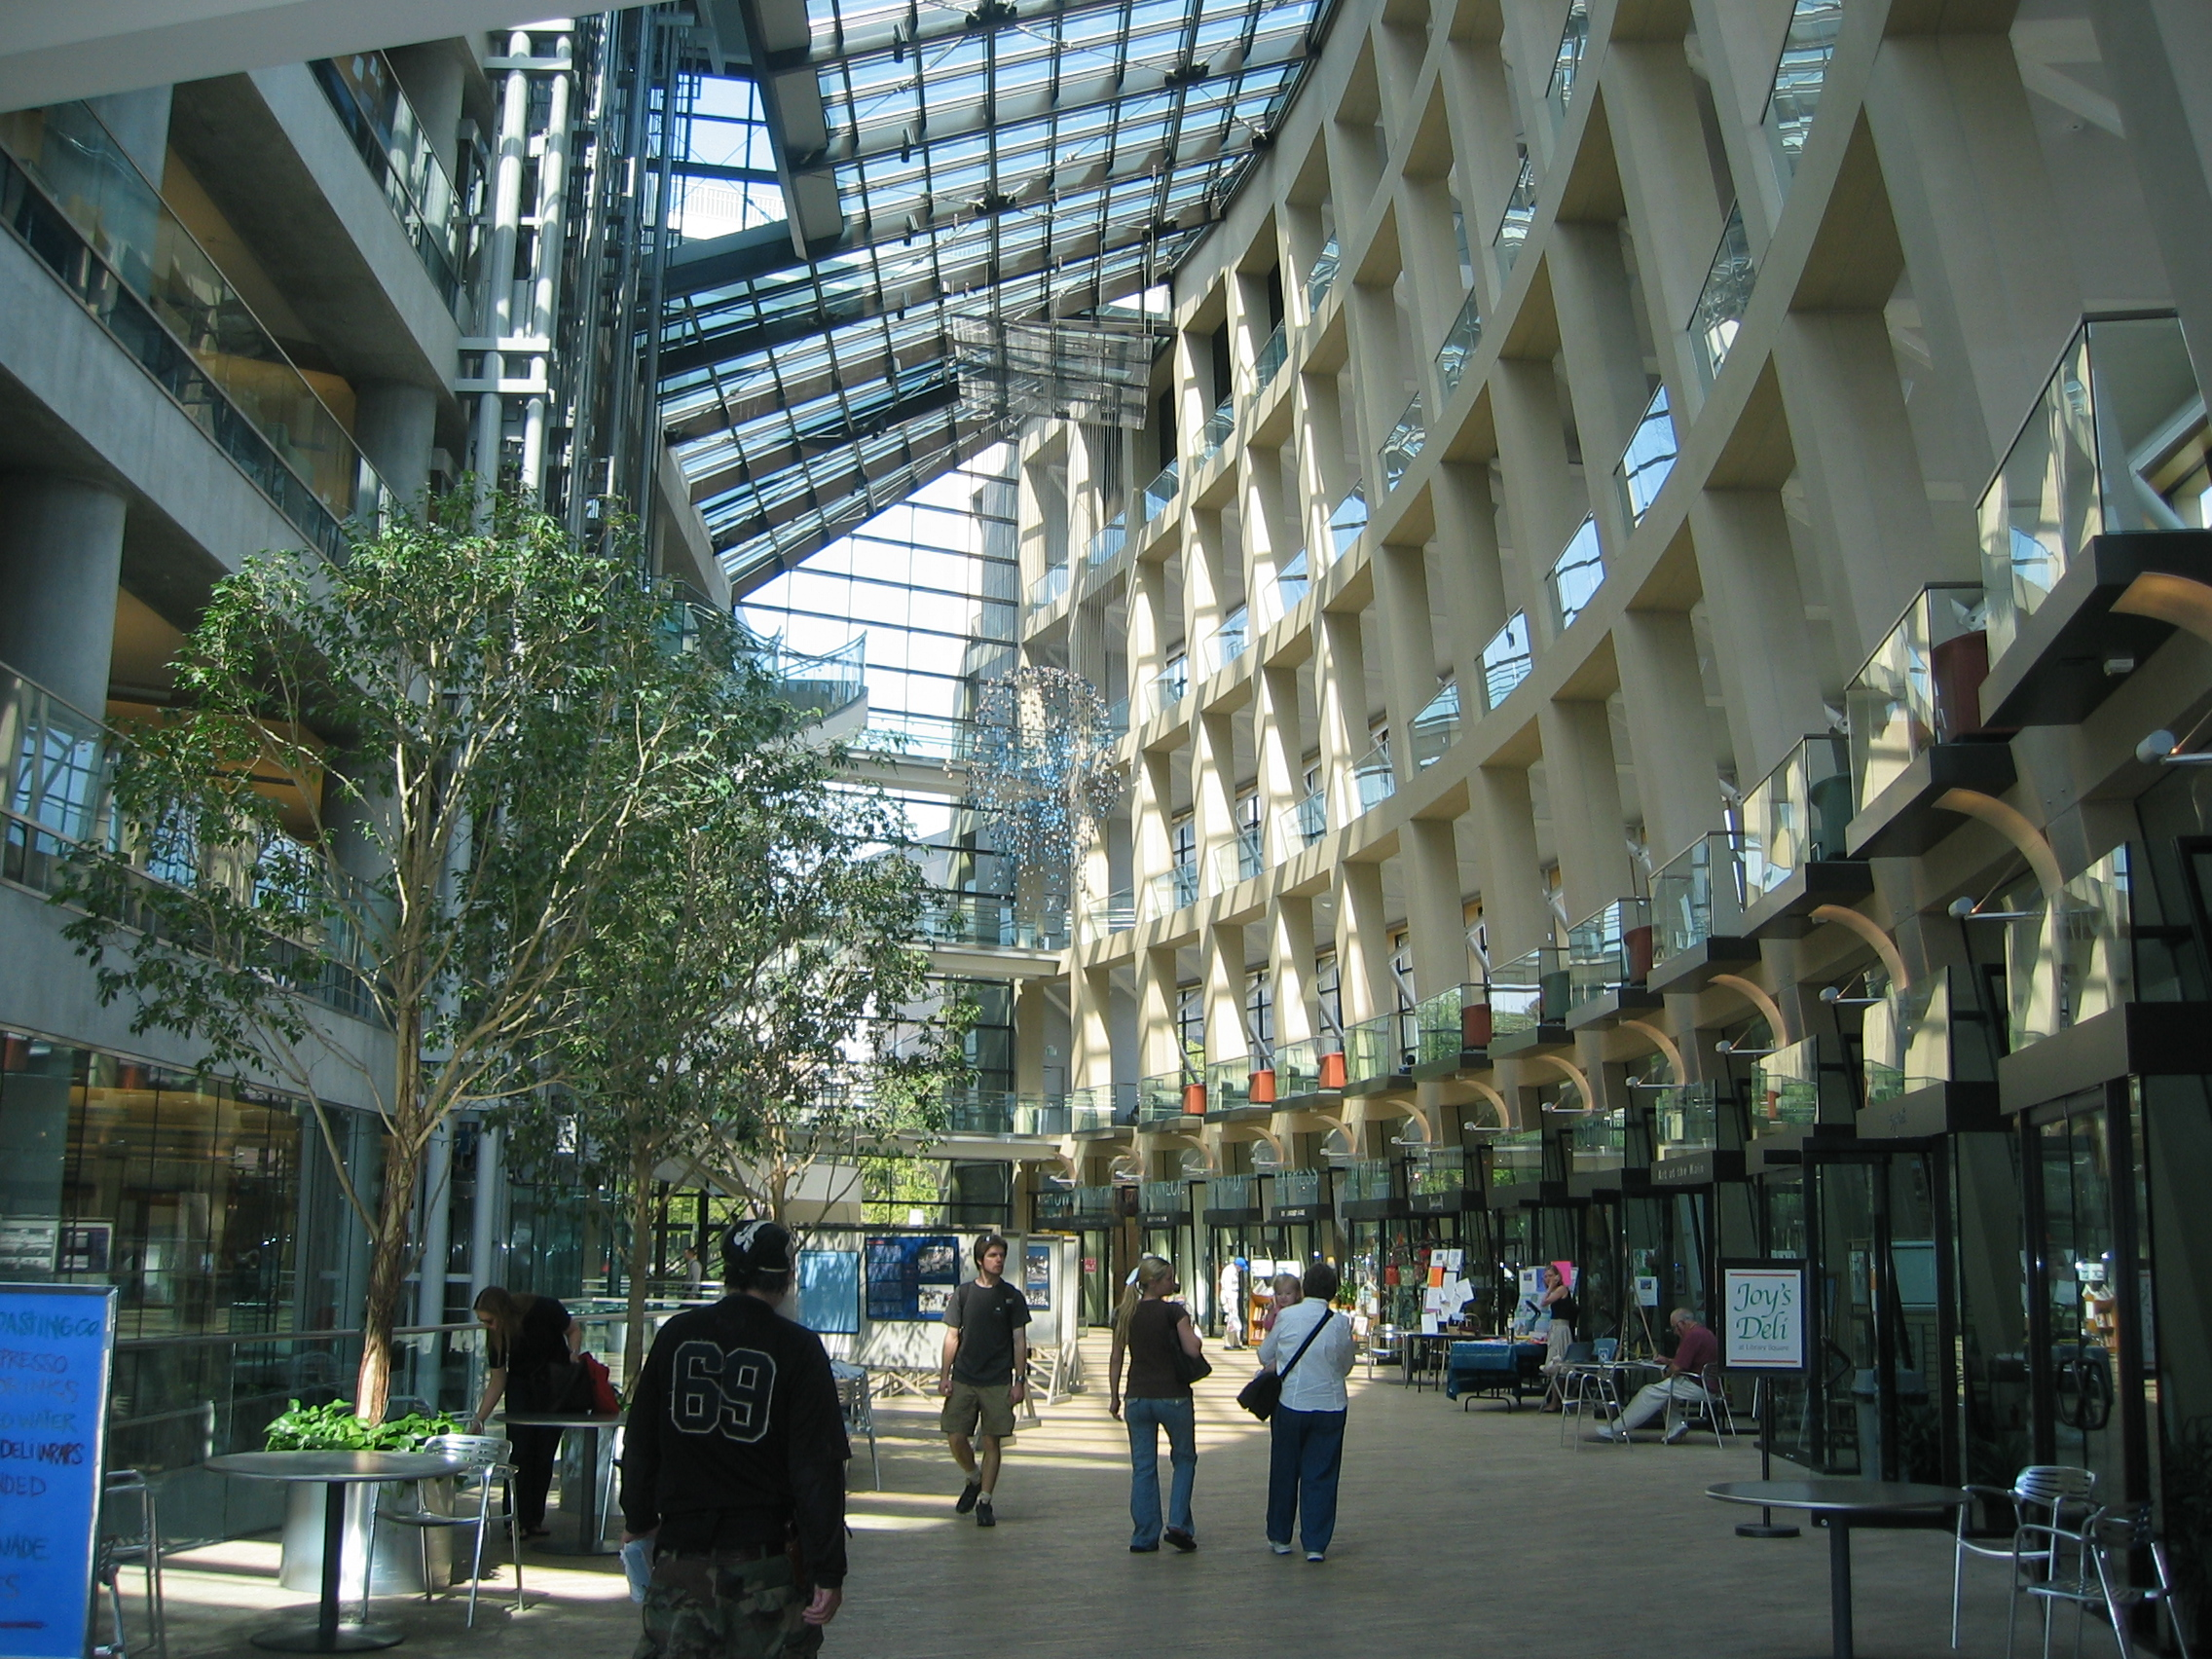 FileSLC Public Library InteriorJPG Wikimedia Commons